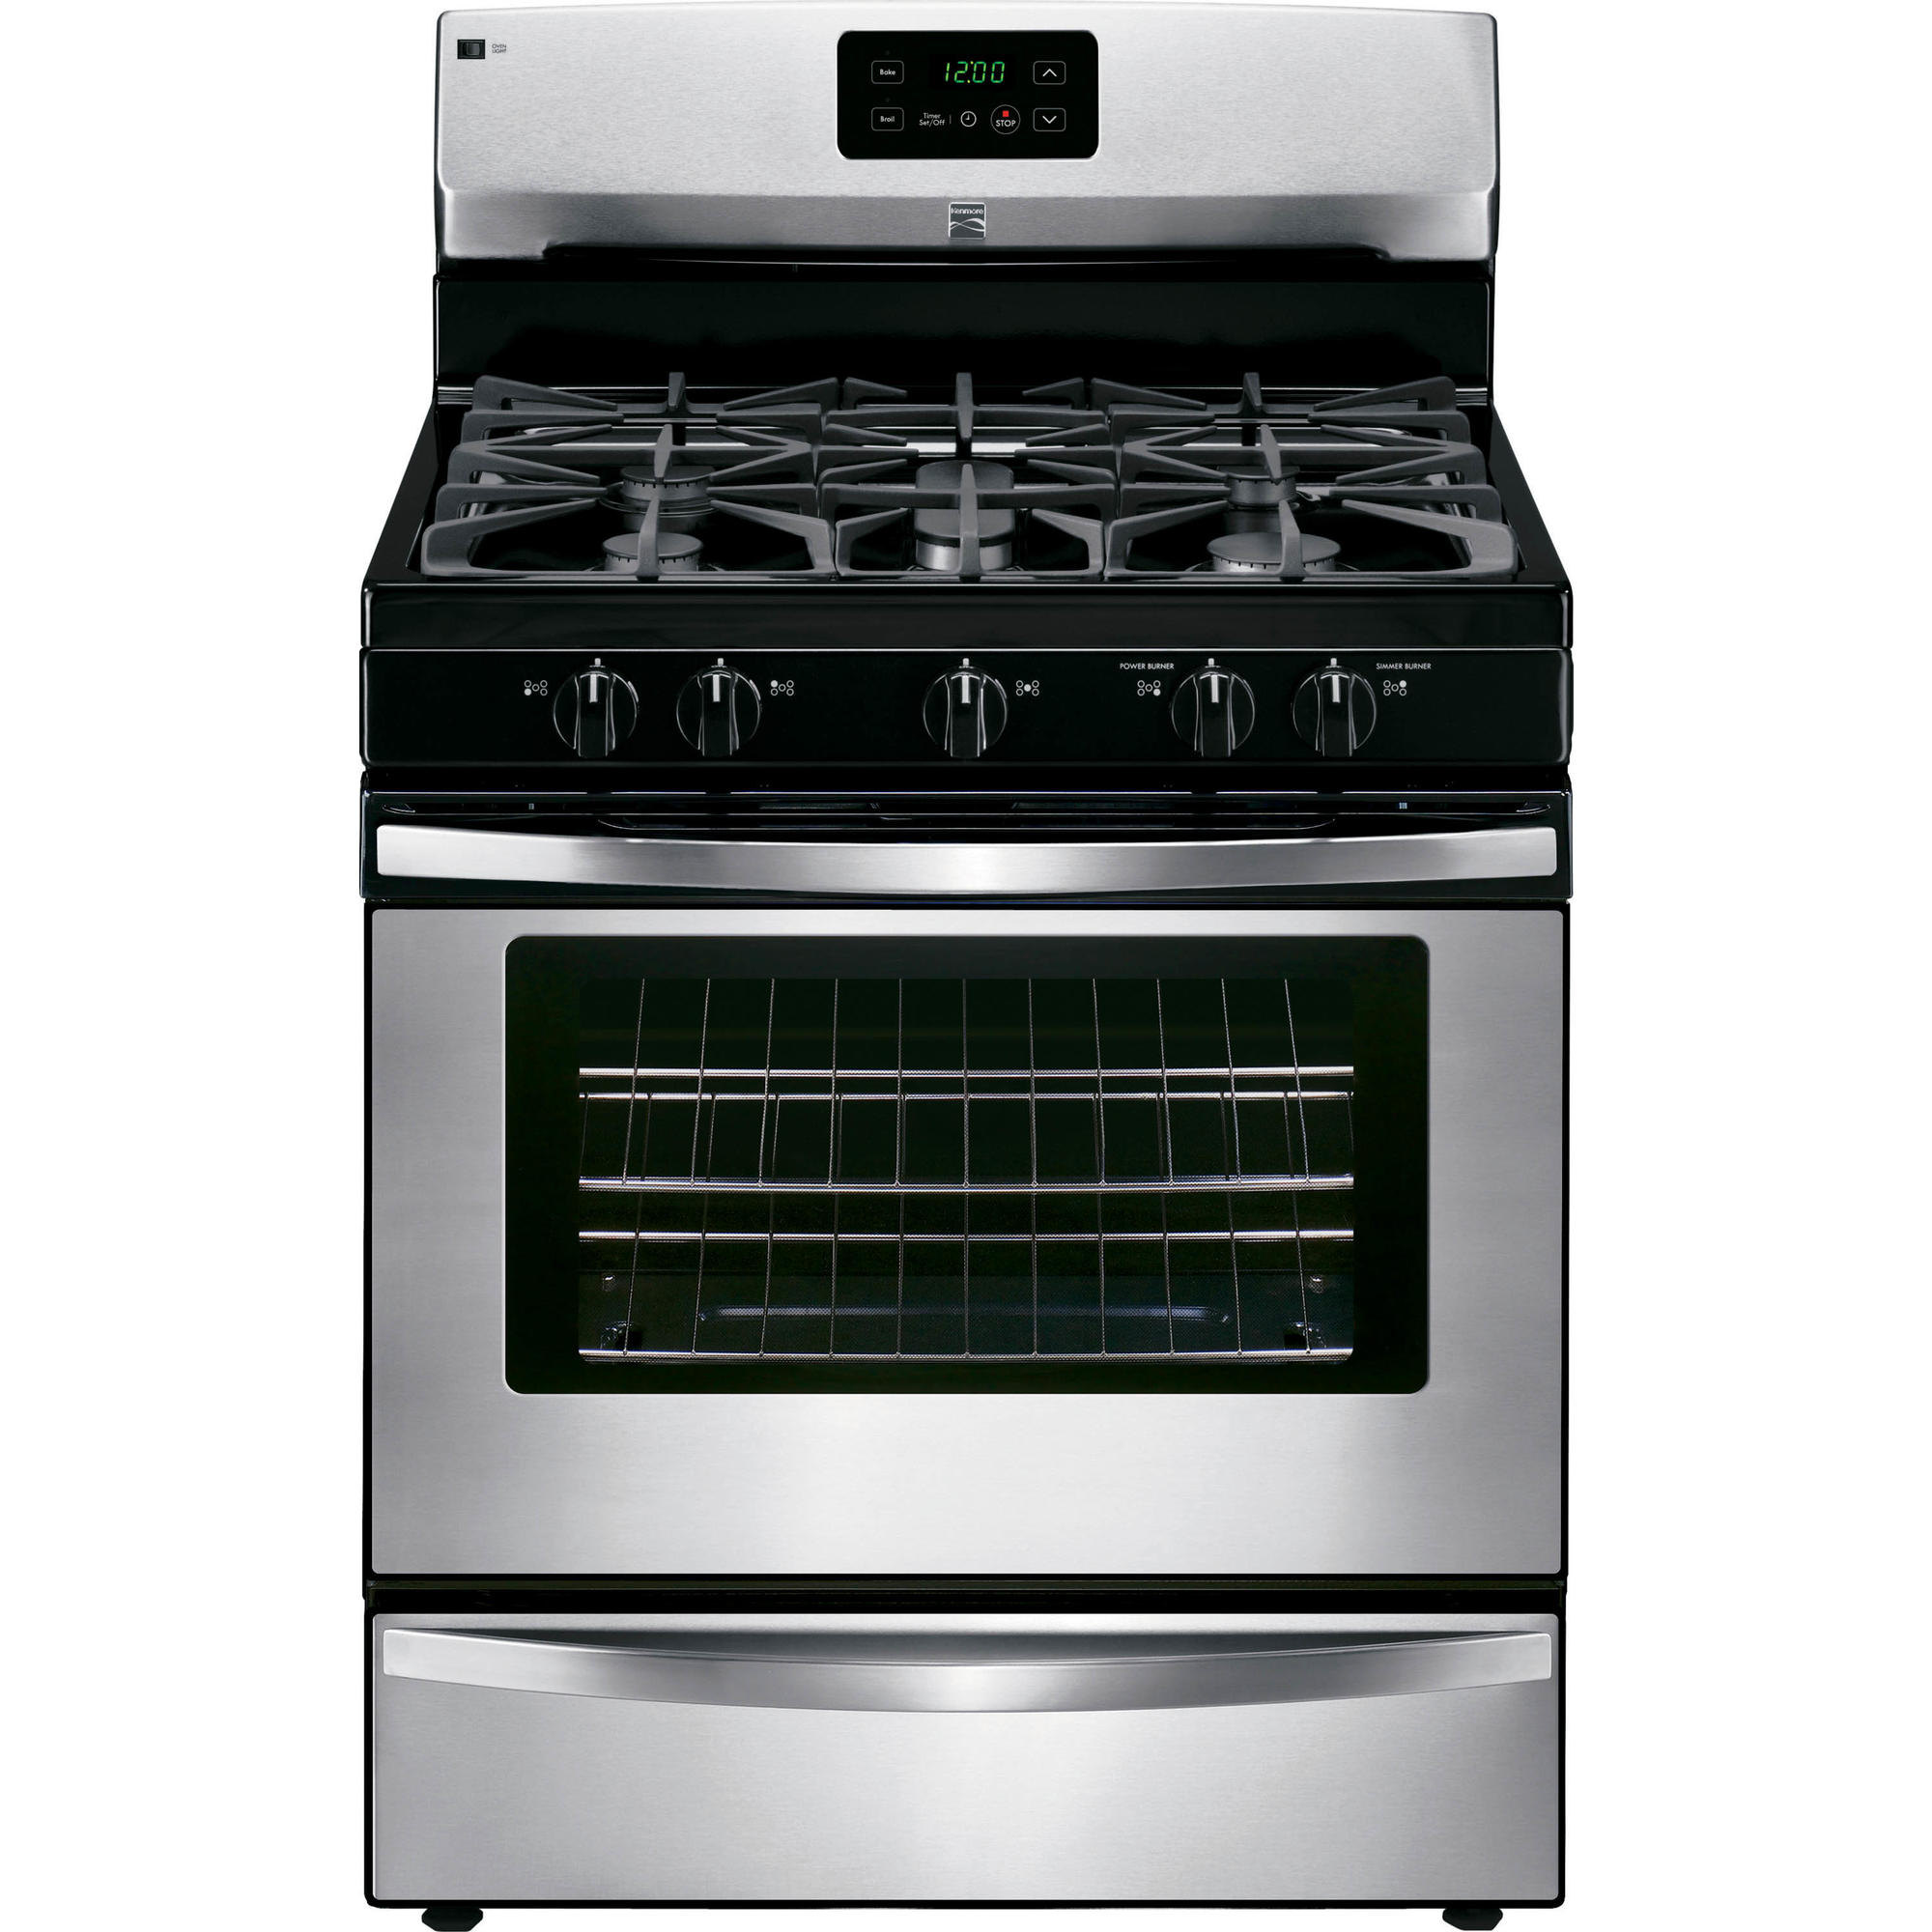 73433-4-2-cu-ft-Freestanding-Gas-Range-Stainless-Steel